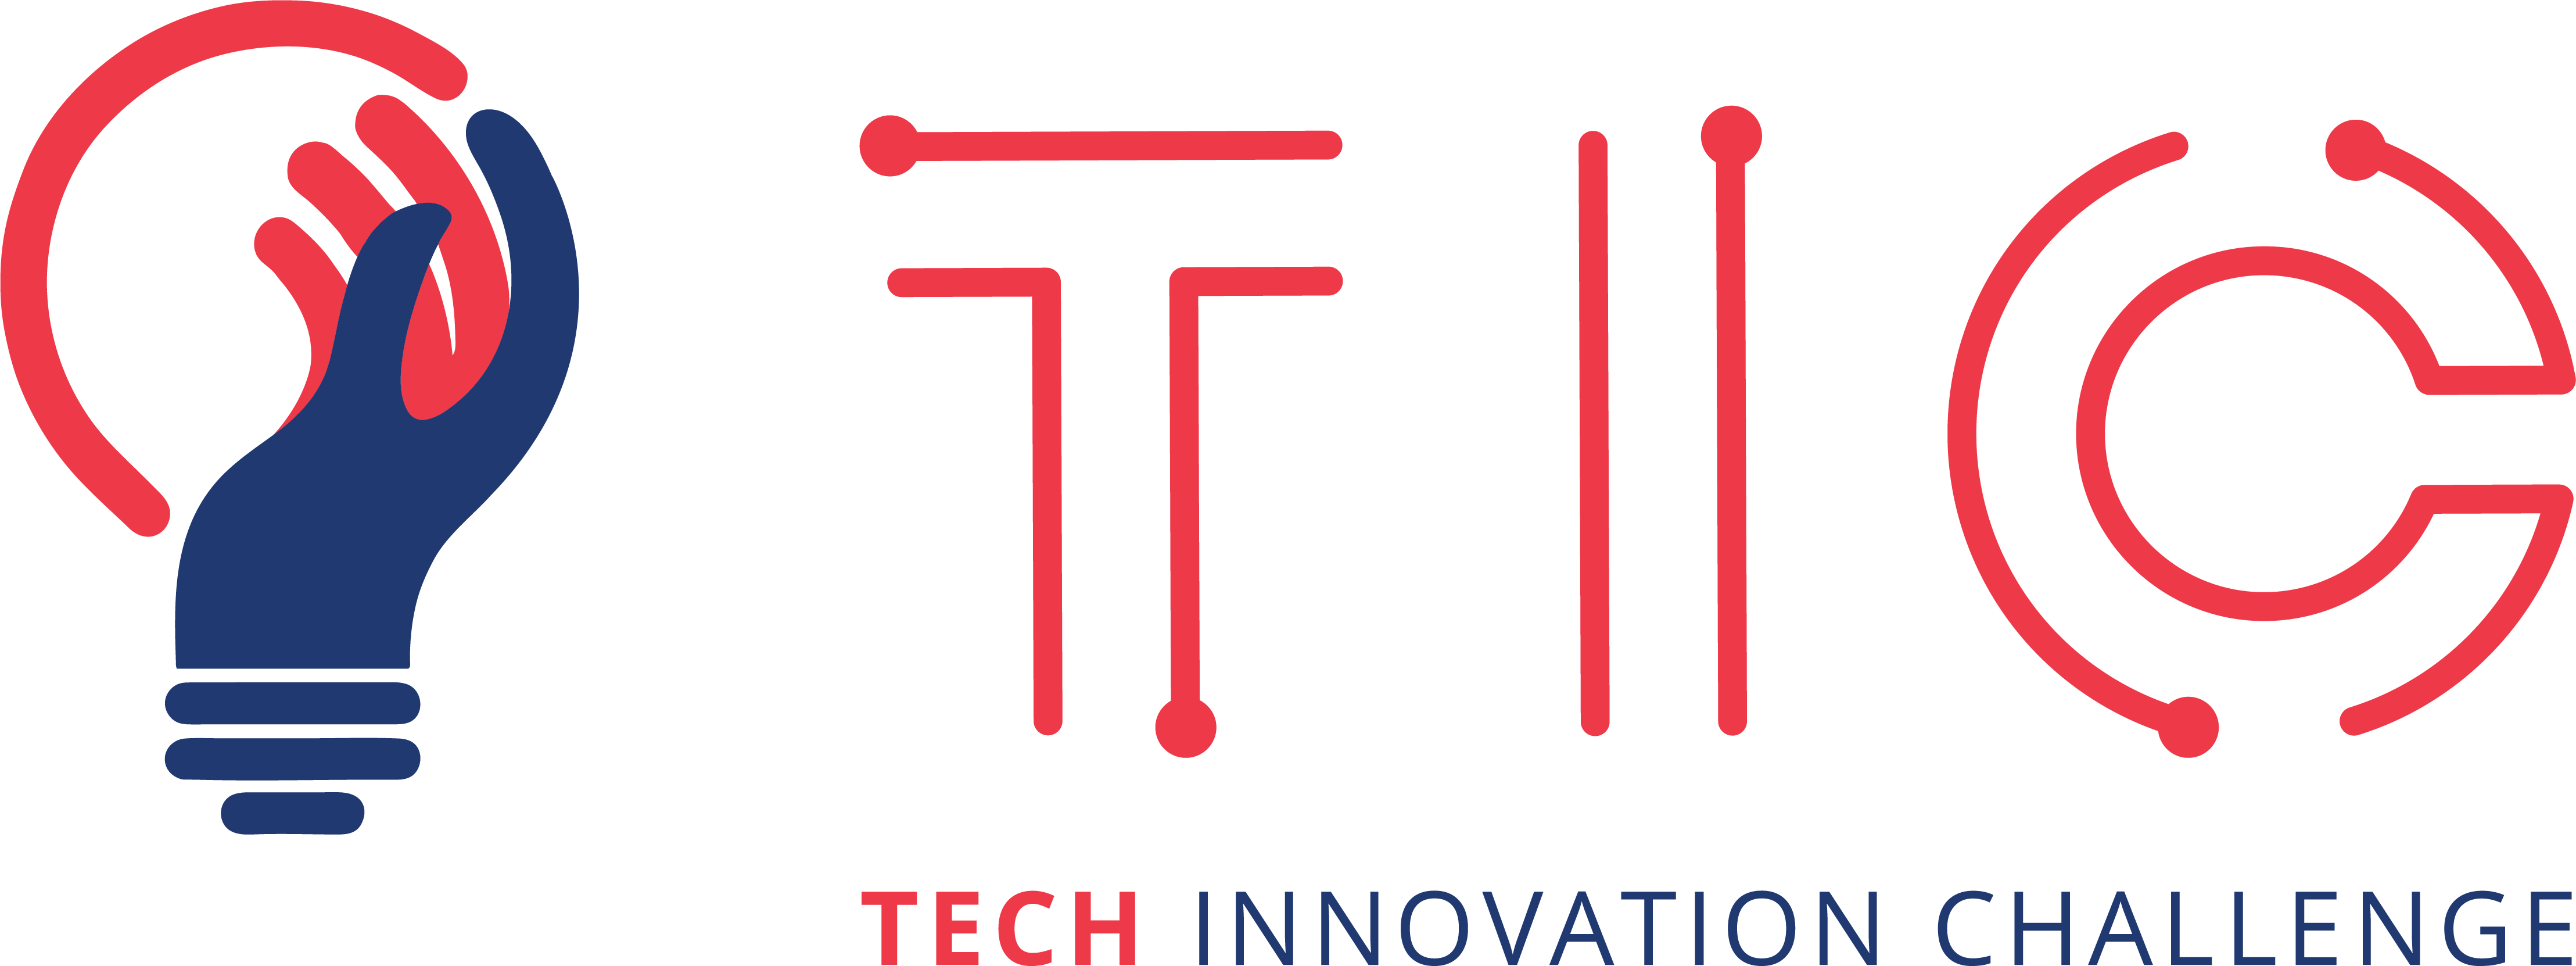 Tepper Tech Innovation Challenge